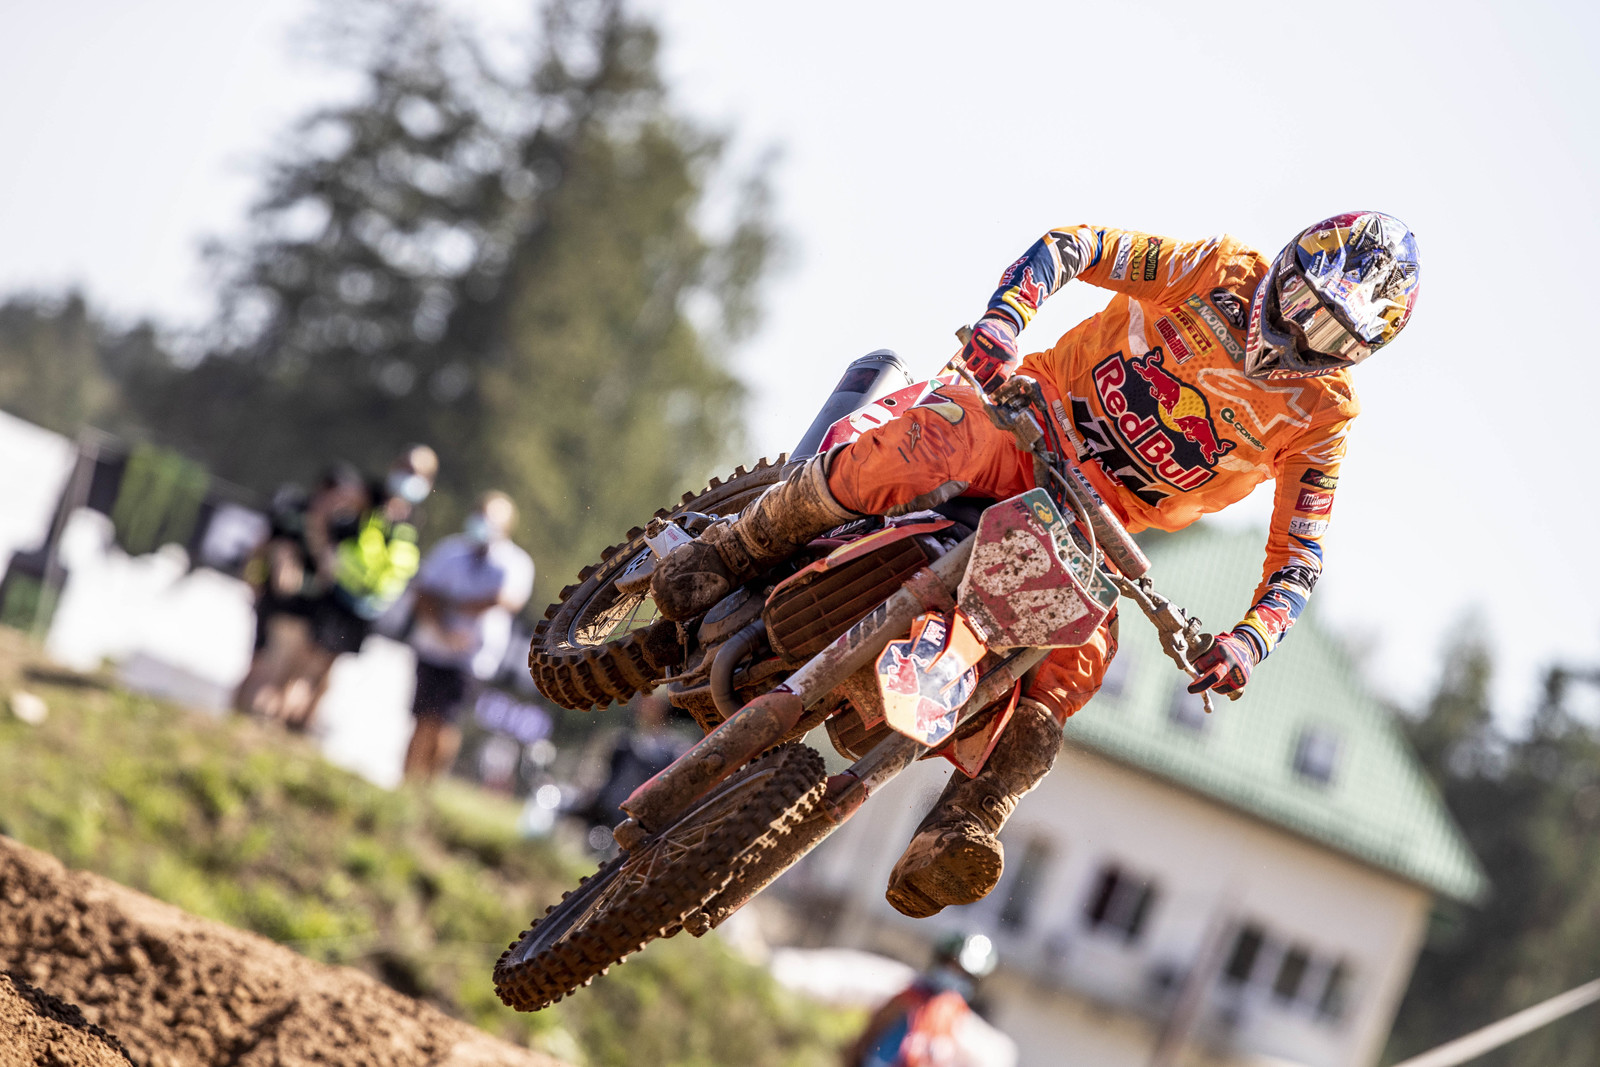 """Jeffrey Herlings: """"The competition gets higher every year and we are all closer to each other, so the starts are key. I struggled a bit in the first moto, with arm-pump also, but it helped to be 4th and then leading the second moto from the second lap meant the overall. Another GP win, so another good day and I want to thank Red Bull KTM because the bike was awesome. I'm happy with the week here in Latvia. I had a few little 'gifts' here and there but it was good for the championship."""""""